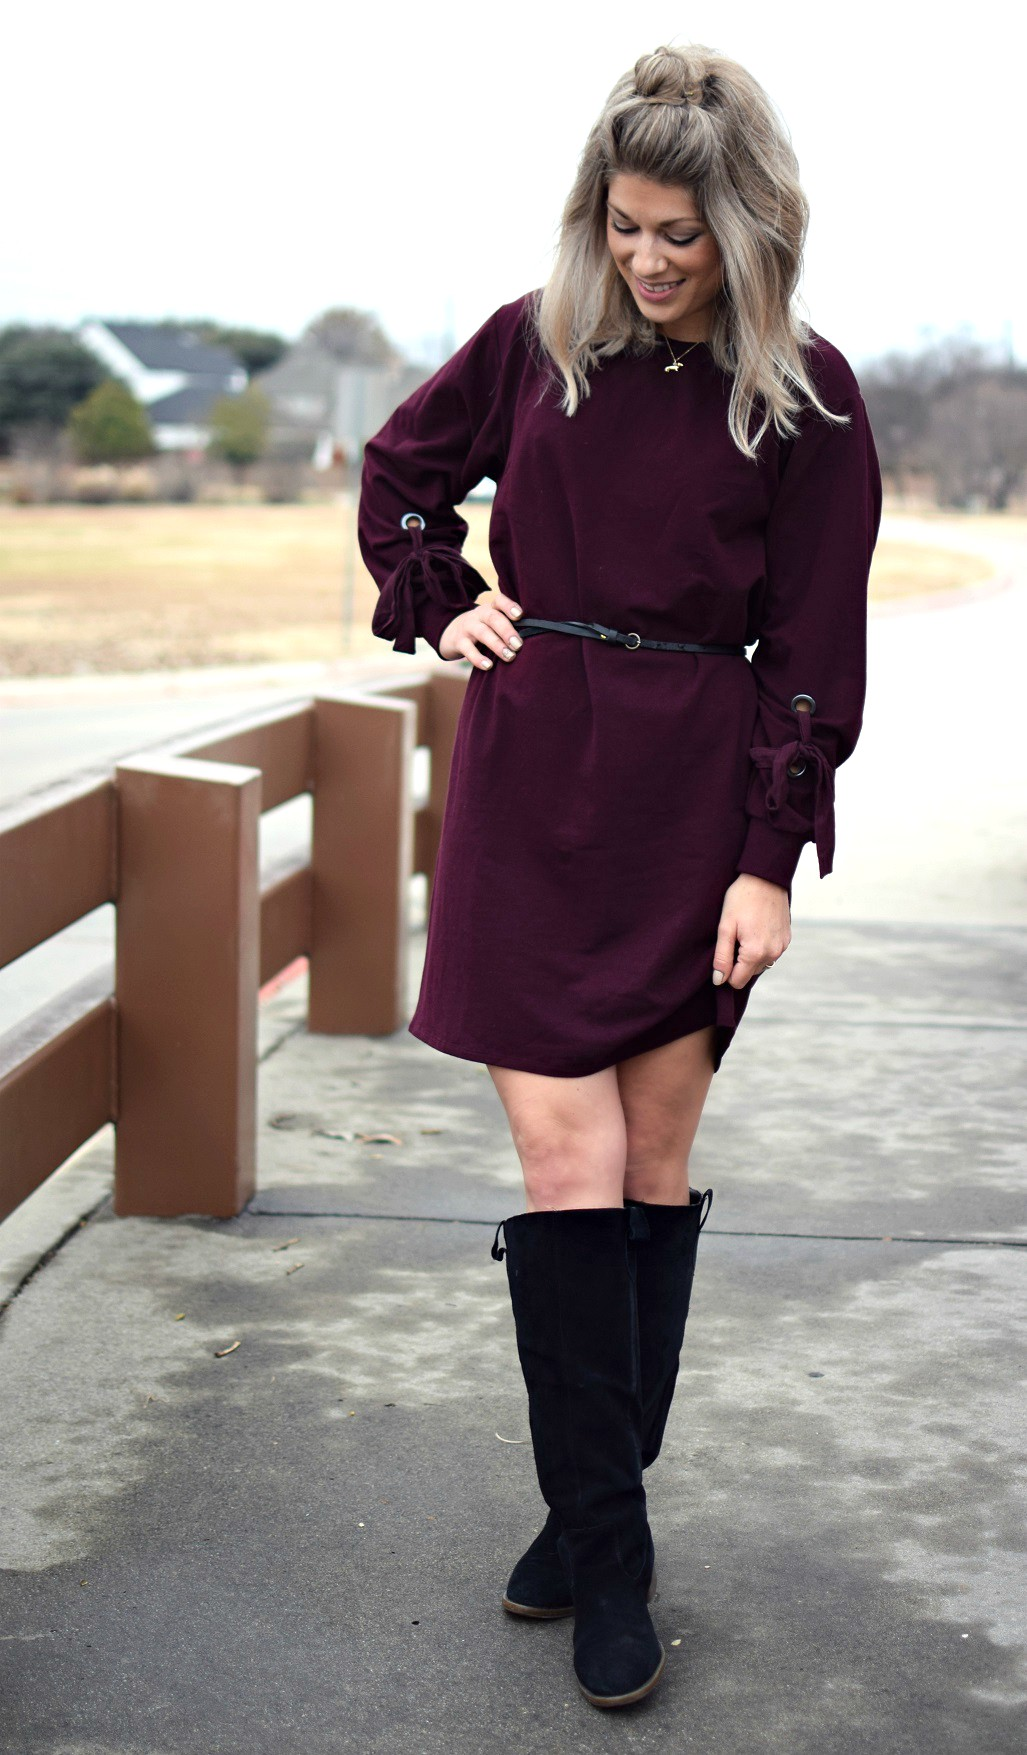 vince camuto maroon dress with black boots